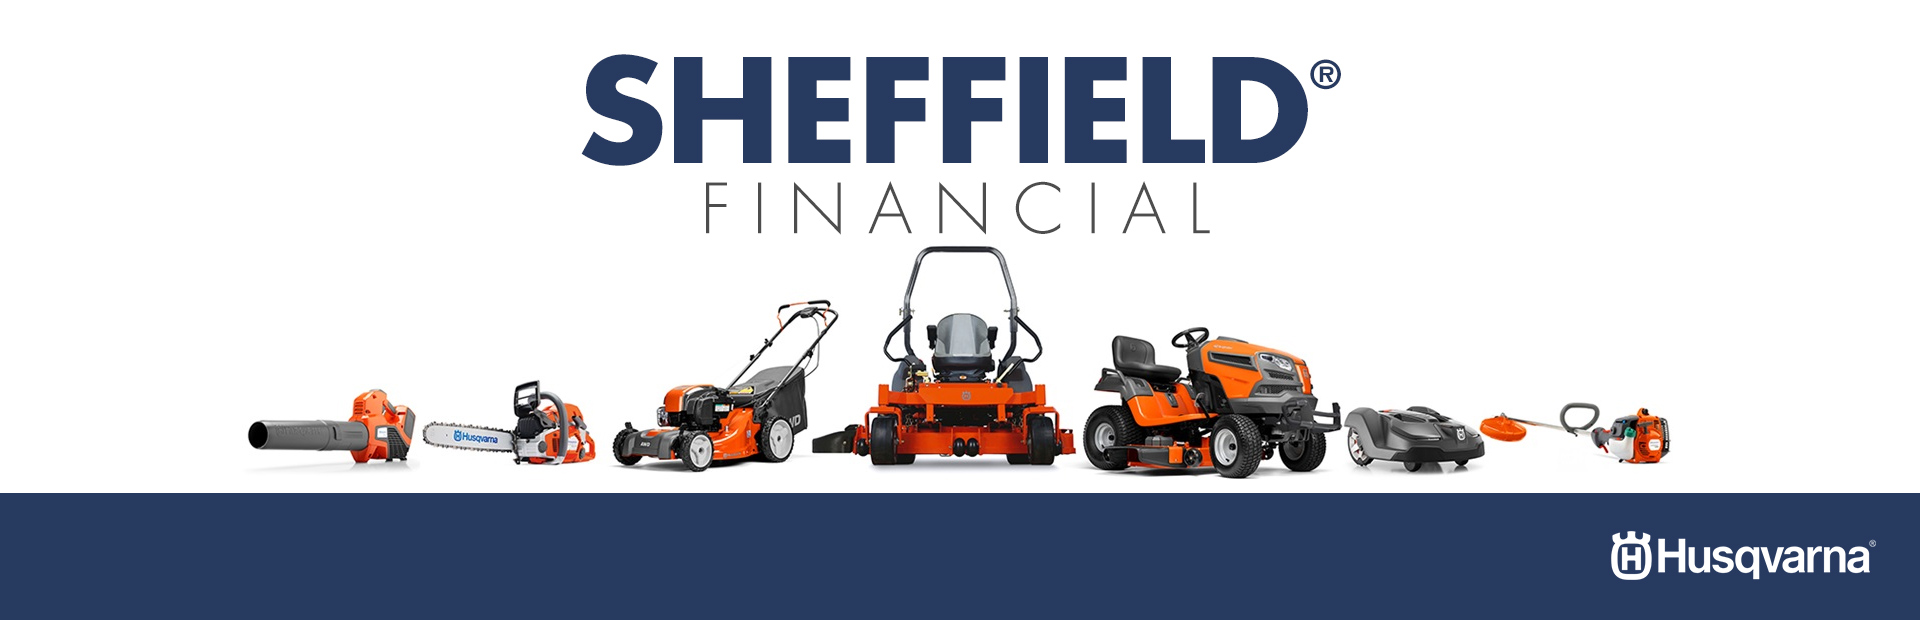 Husqvarna: Sheffield Financial Programs